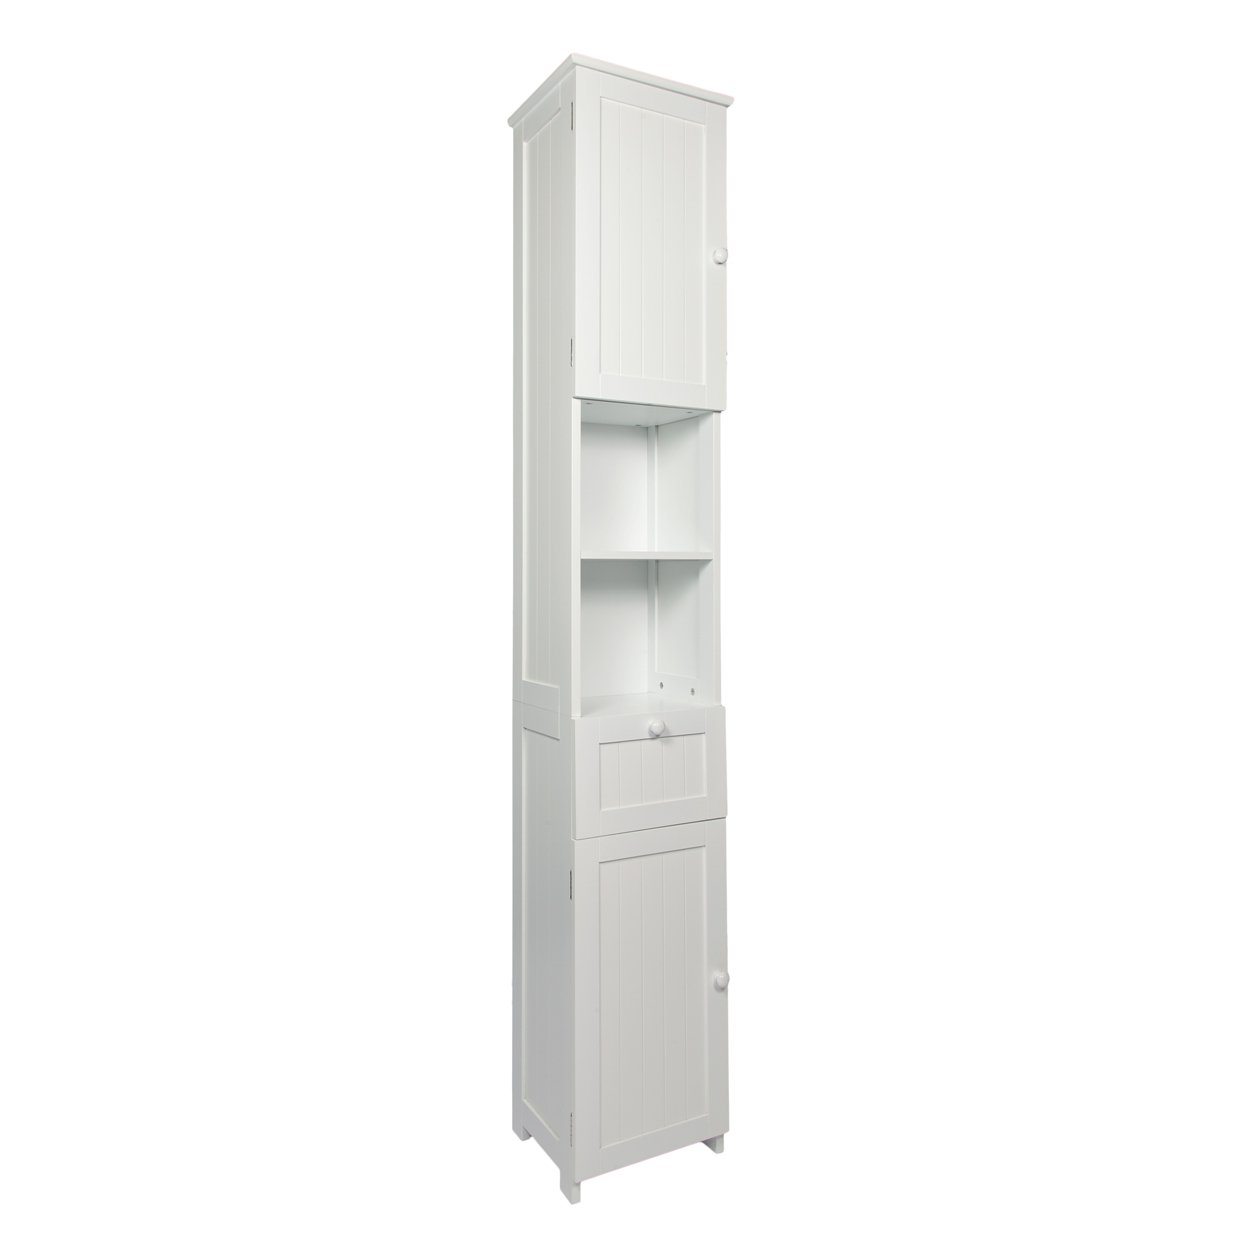 Bathroom Tall Cabinets